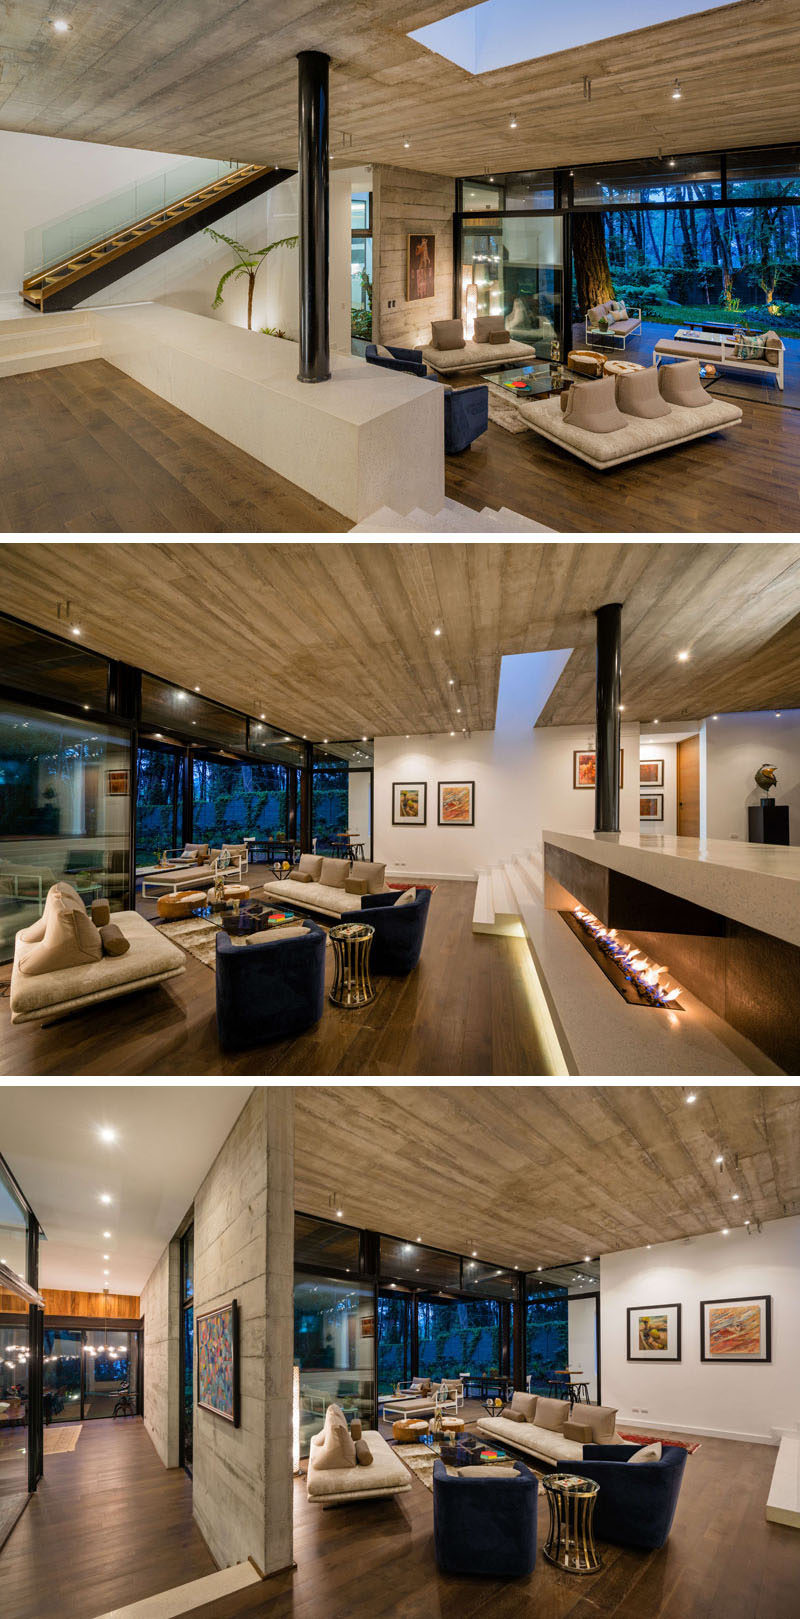 This modern living room has a fireplace for added warmth, a skylight to add natural light, and large sliding doors that open to the outside. #LivingRoom #Fireplace #ConcreteCeiling #WoodFloors